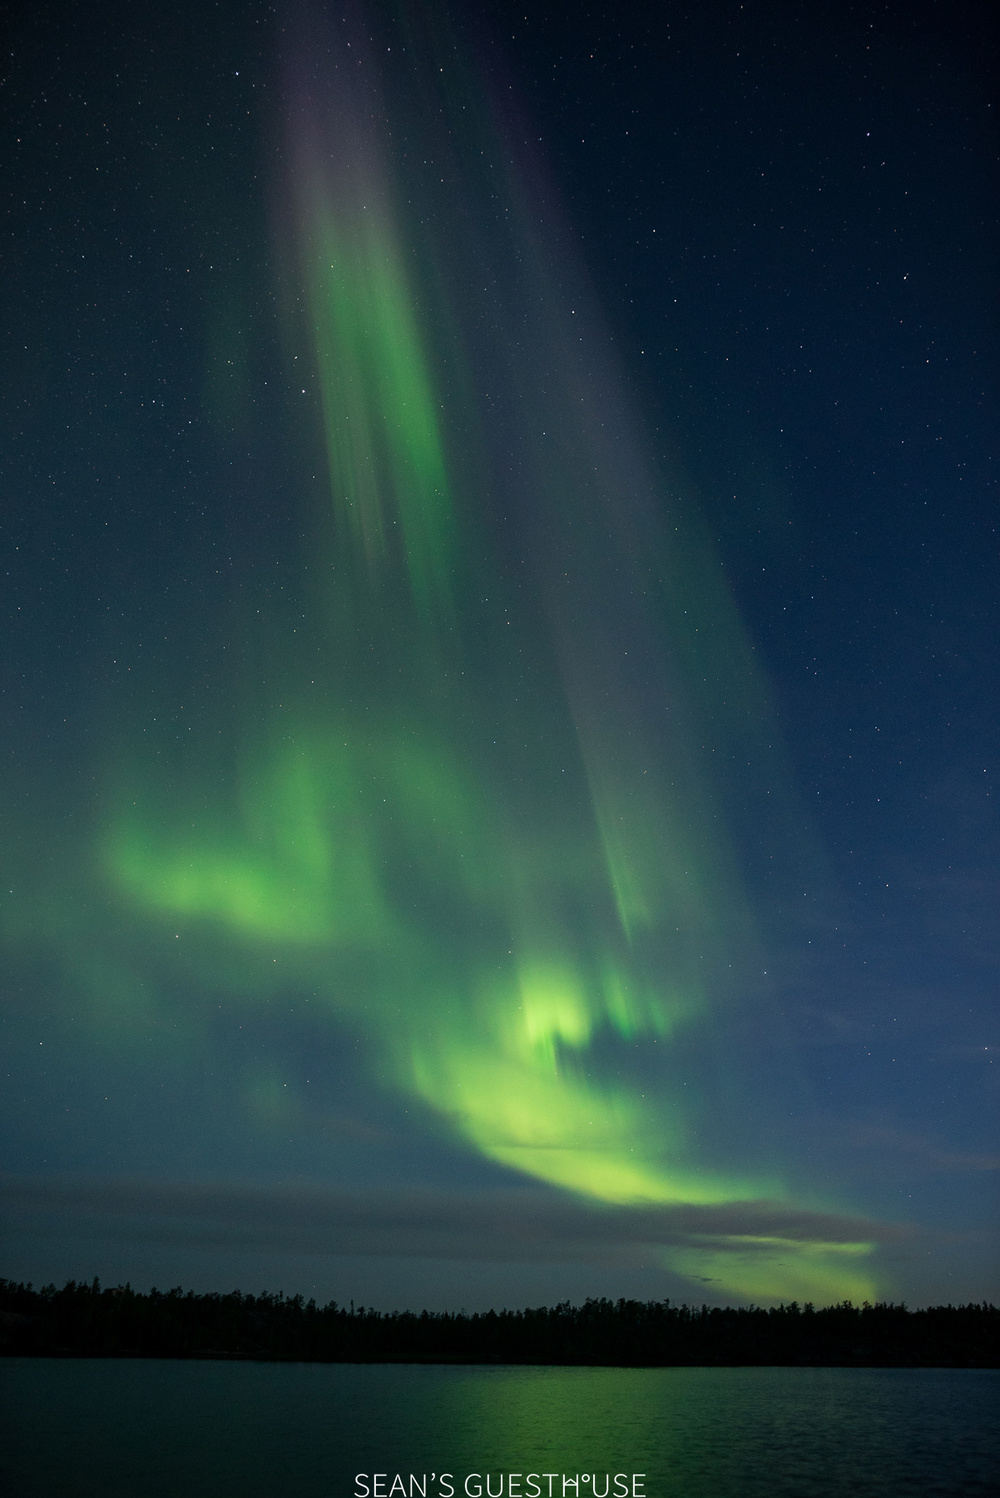 Sean's Guesthouse - Yellowknife Northern Lights and Perseid Meteor Shower - 9.jpg